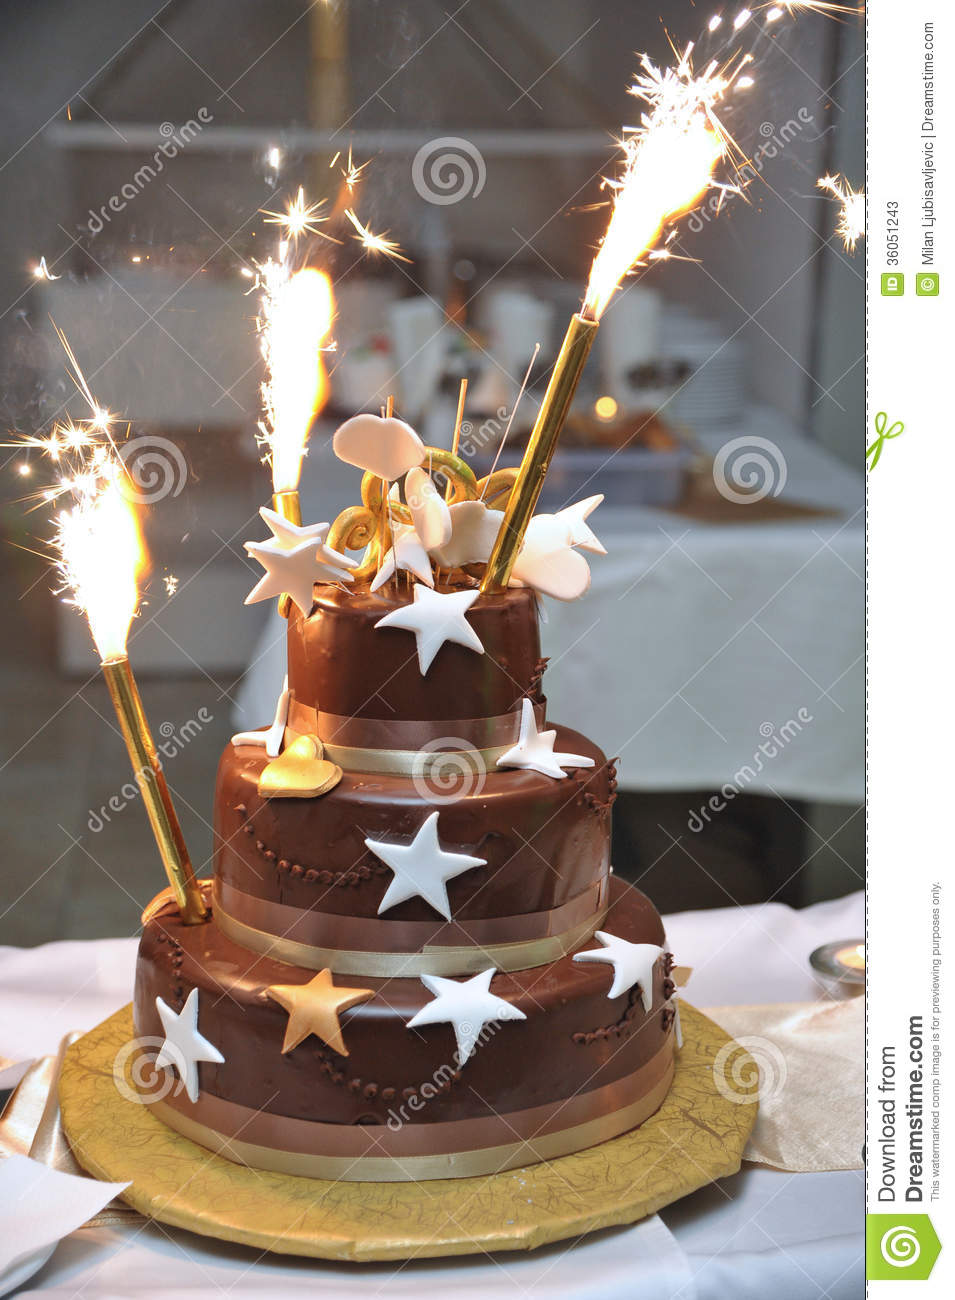 Magnificent Celebration Cake Stock Image Image Of Fireworks Tasty 36051243 Personalised Birthday Cards Paralily Jamesorg